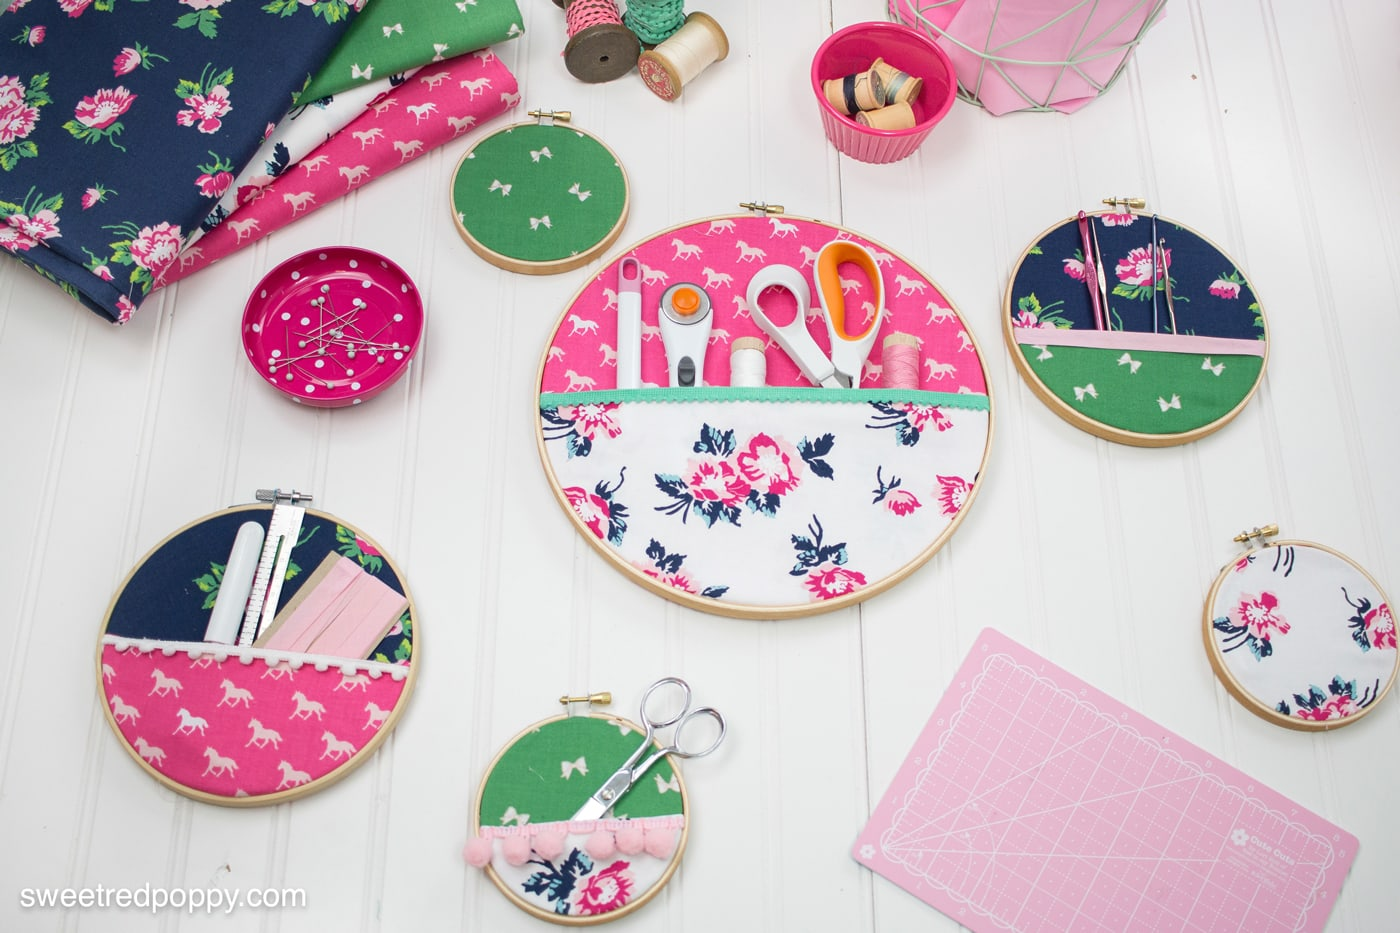 Embroidery hoop wall organizers the polka dot chair